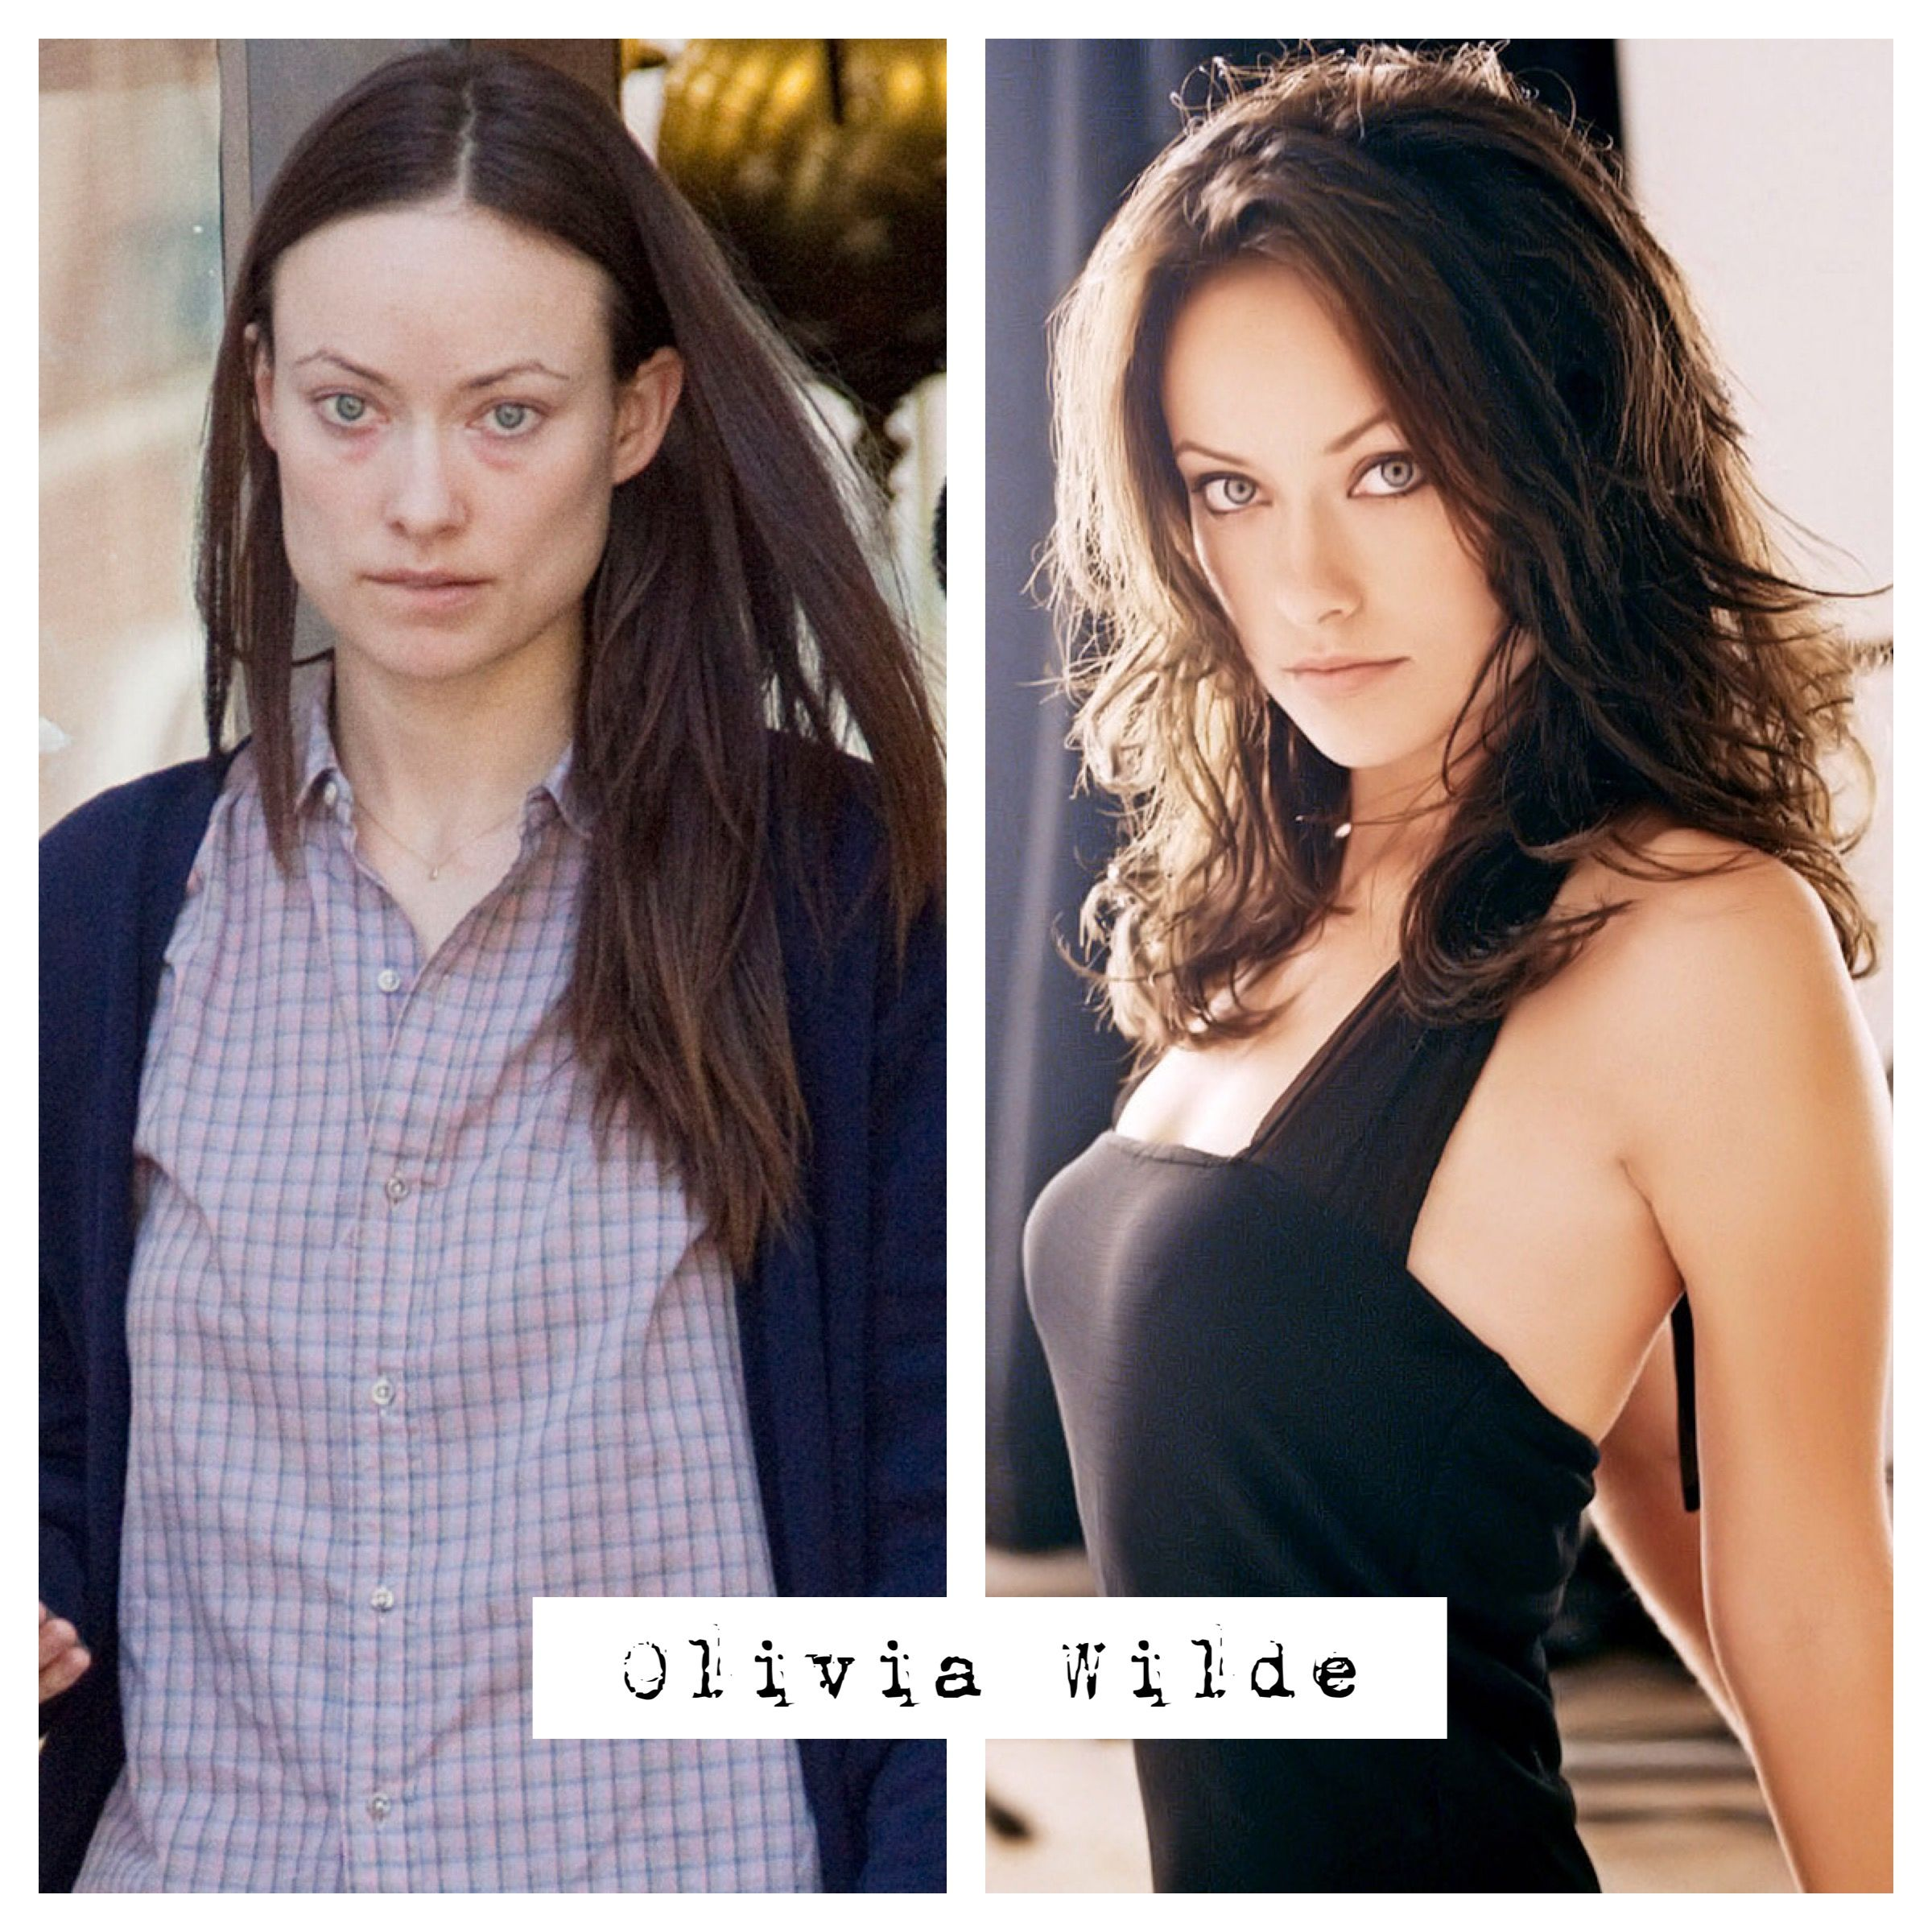 Olivia Wilde no makeup before and after. | Celebs without